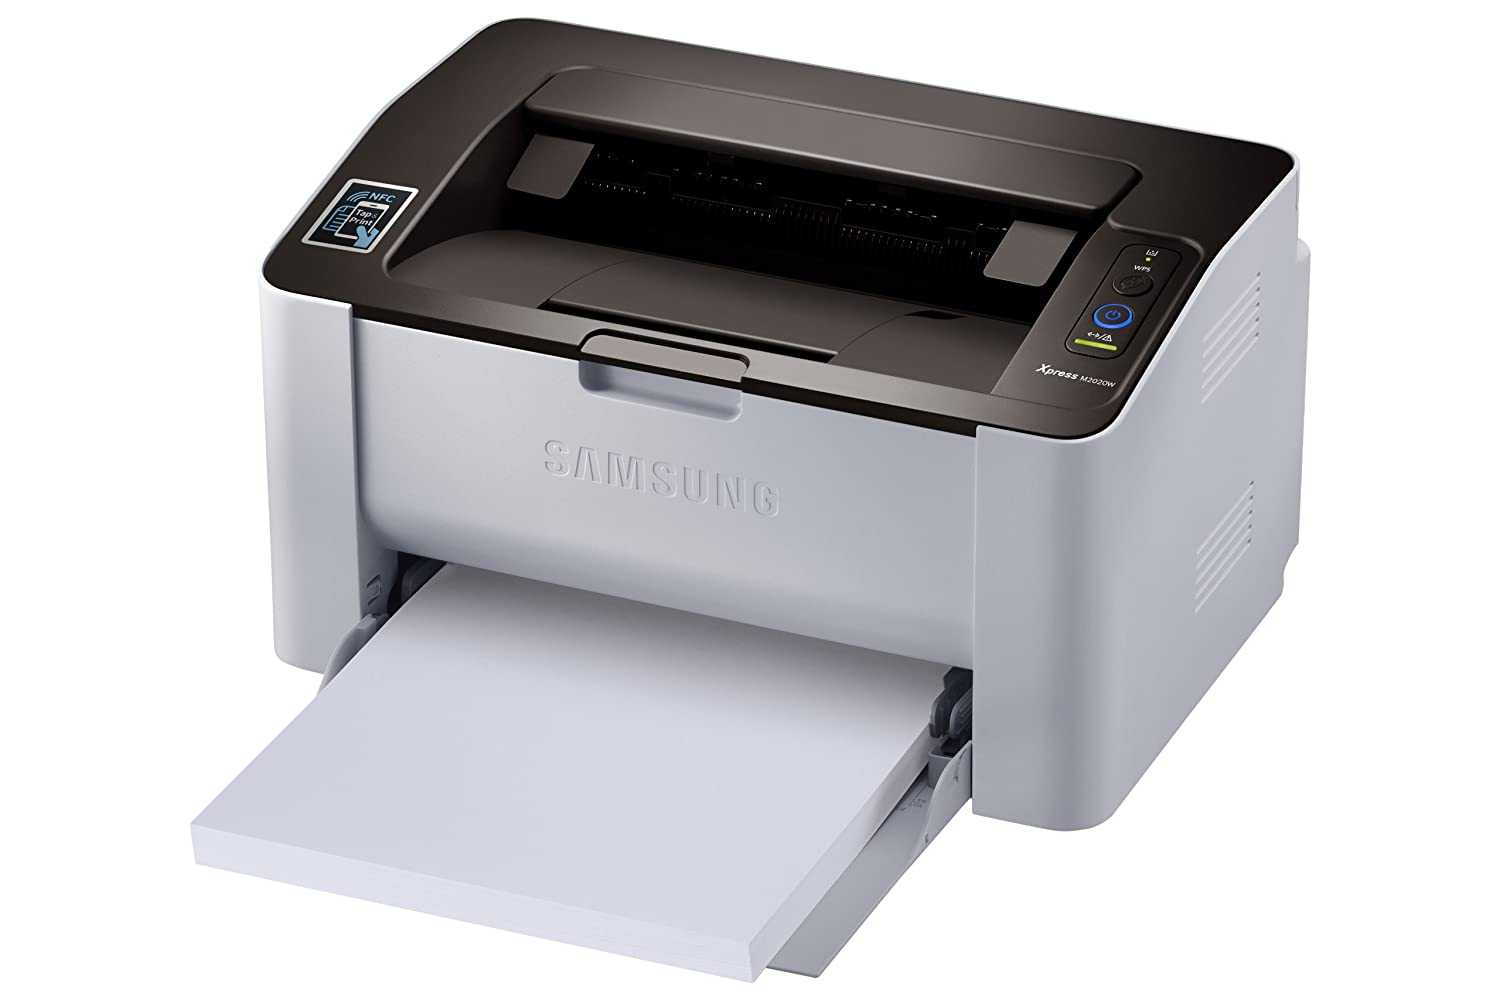 Samsung's monochrome printer is perfect for office work and is compatible with Chromebooks.